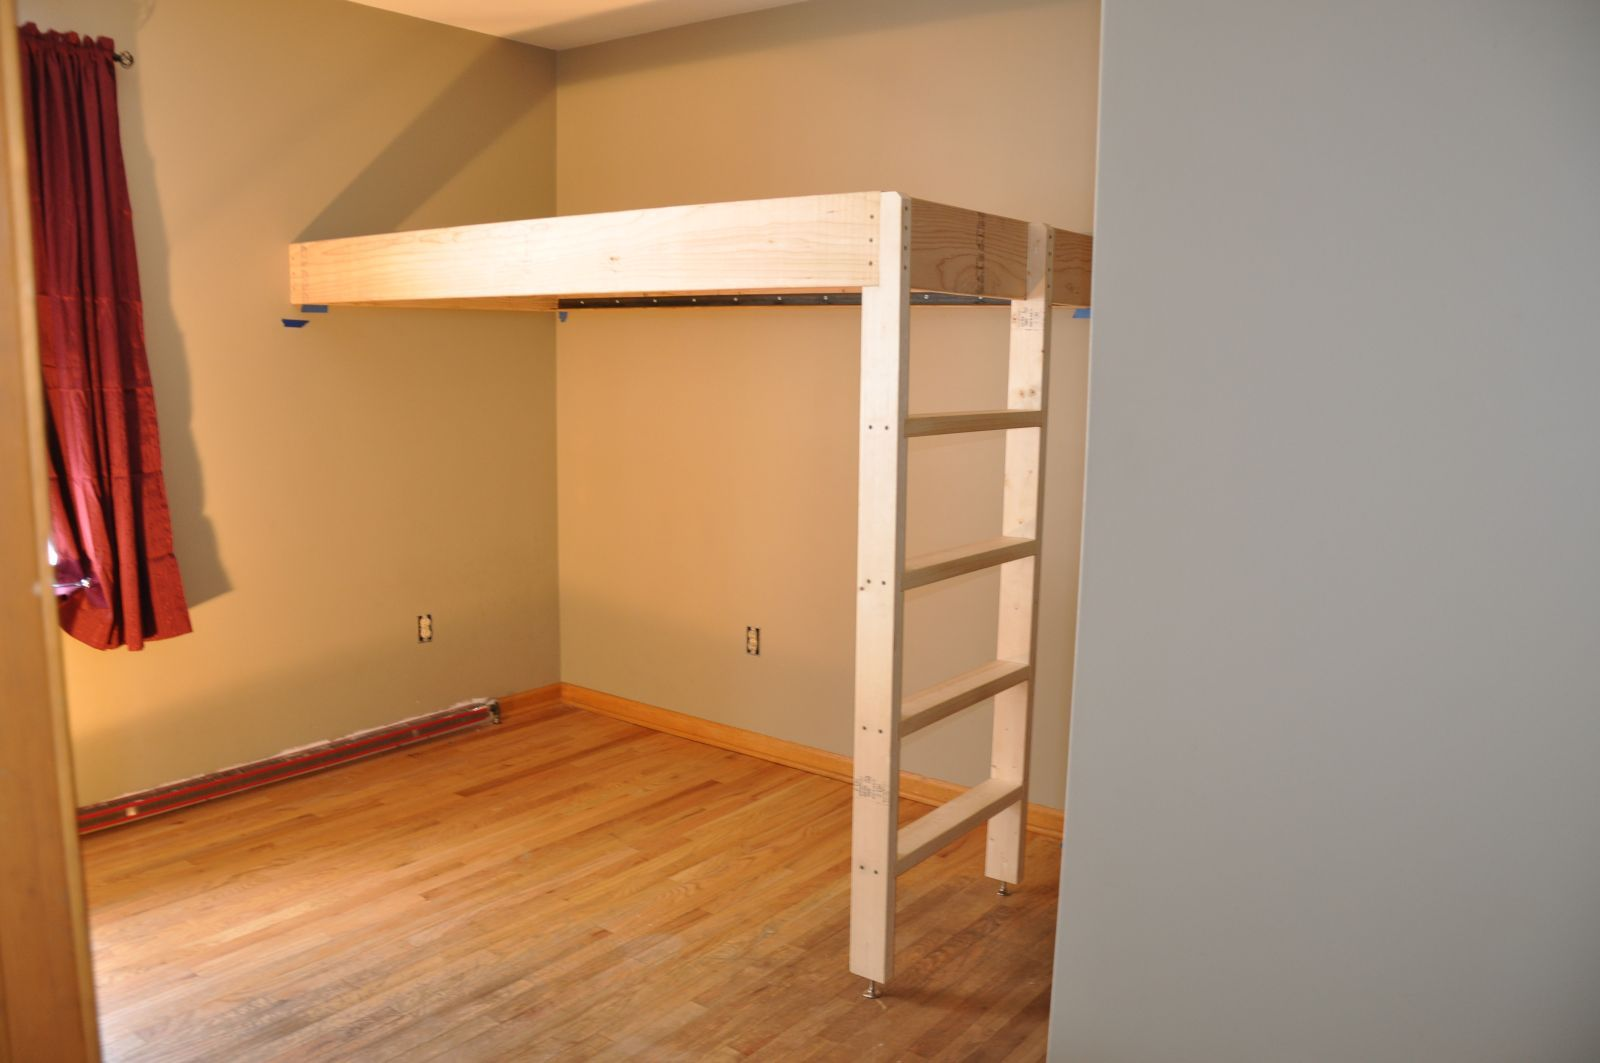 Pin By Shaana Robrock On Max S Room Bed Bedroom Loft Bed Plans